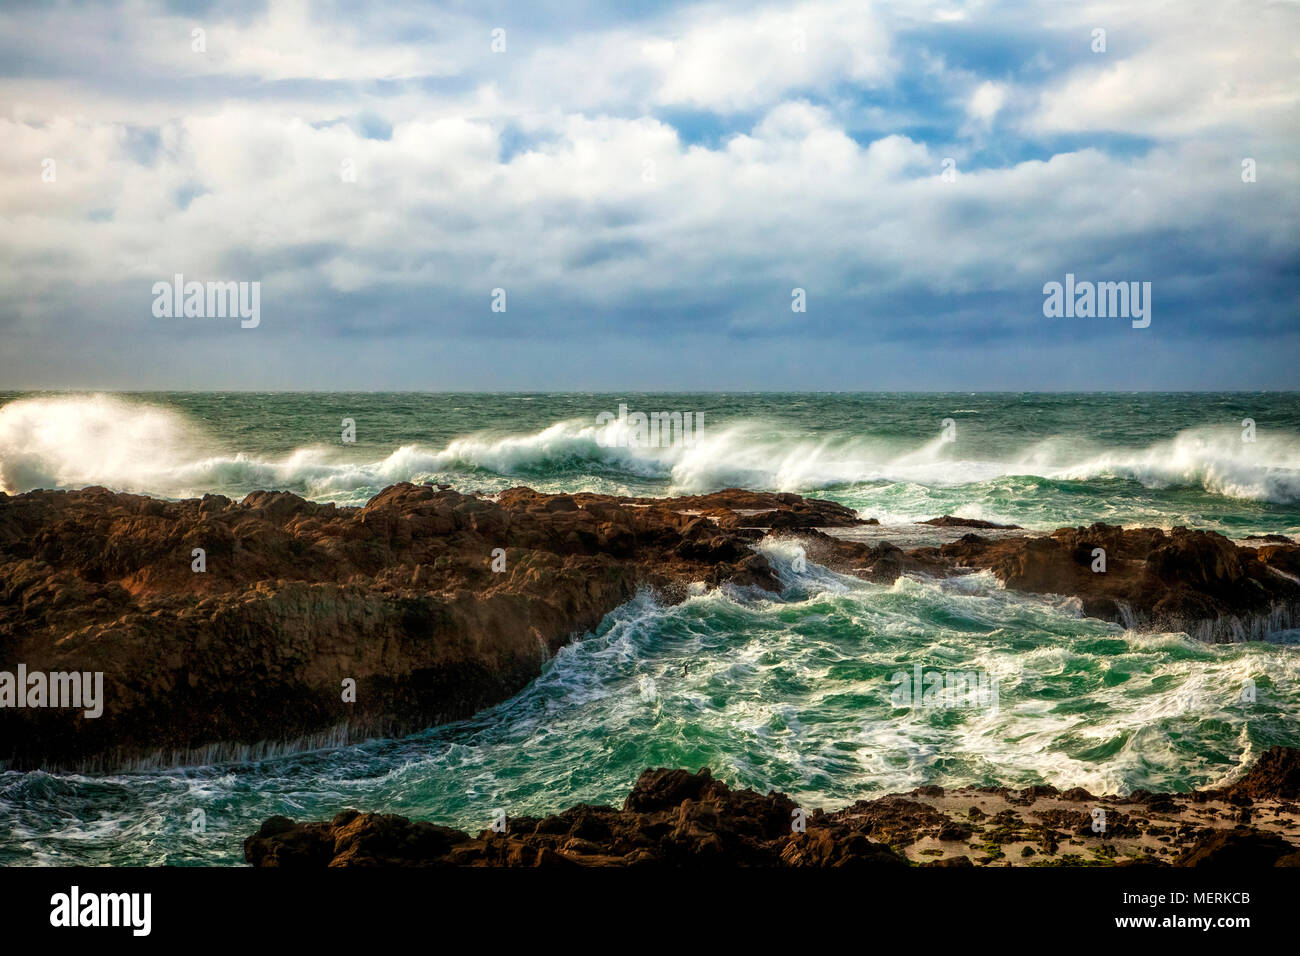 Crashing waves on the Oregon coast - Stock Image